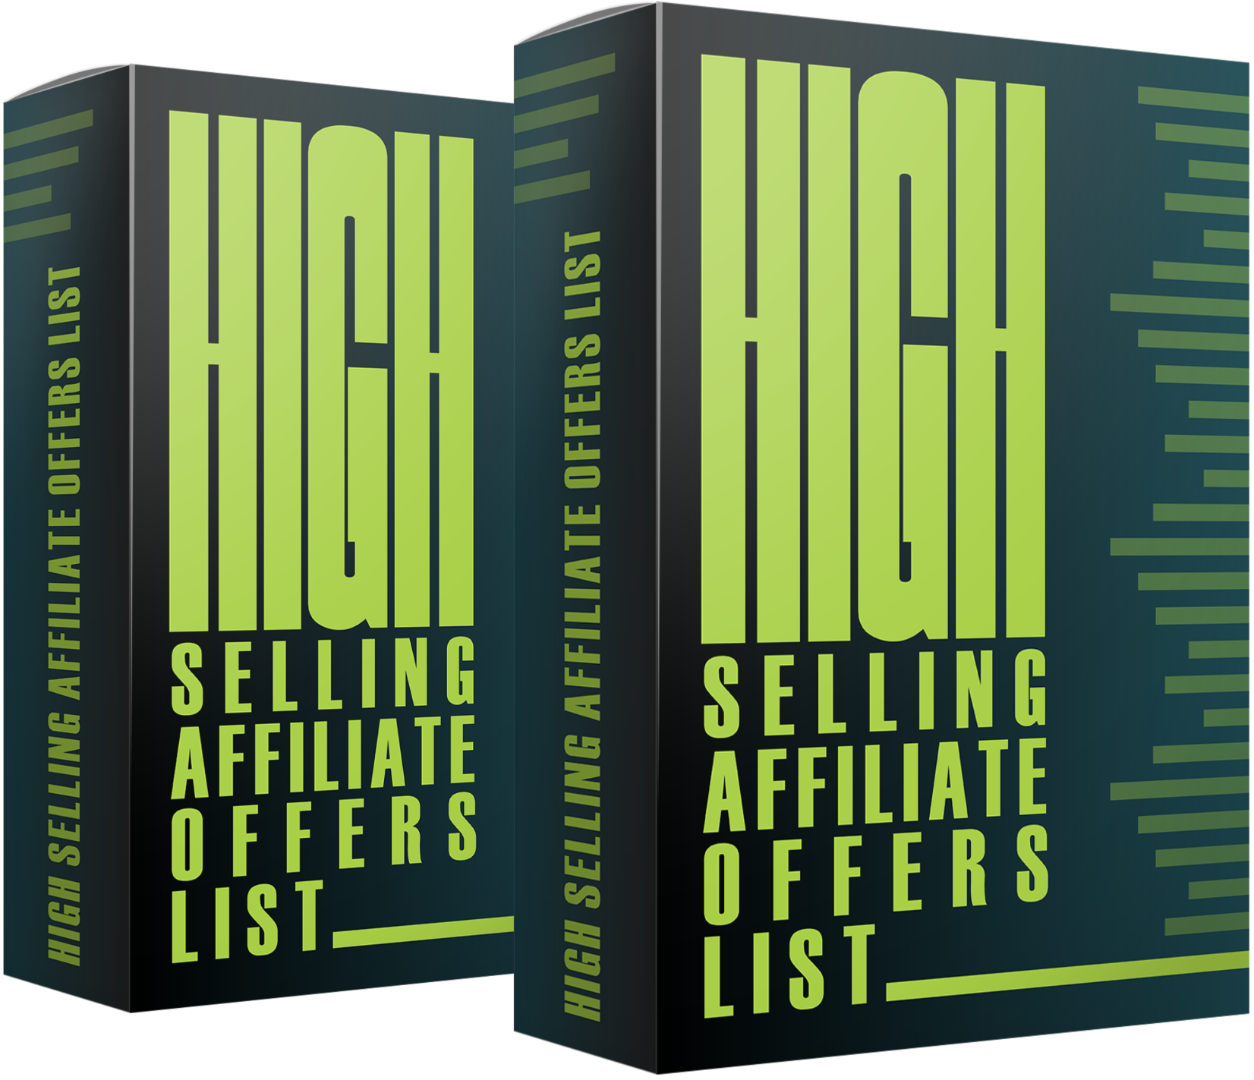 High selling affiliate offers list.png